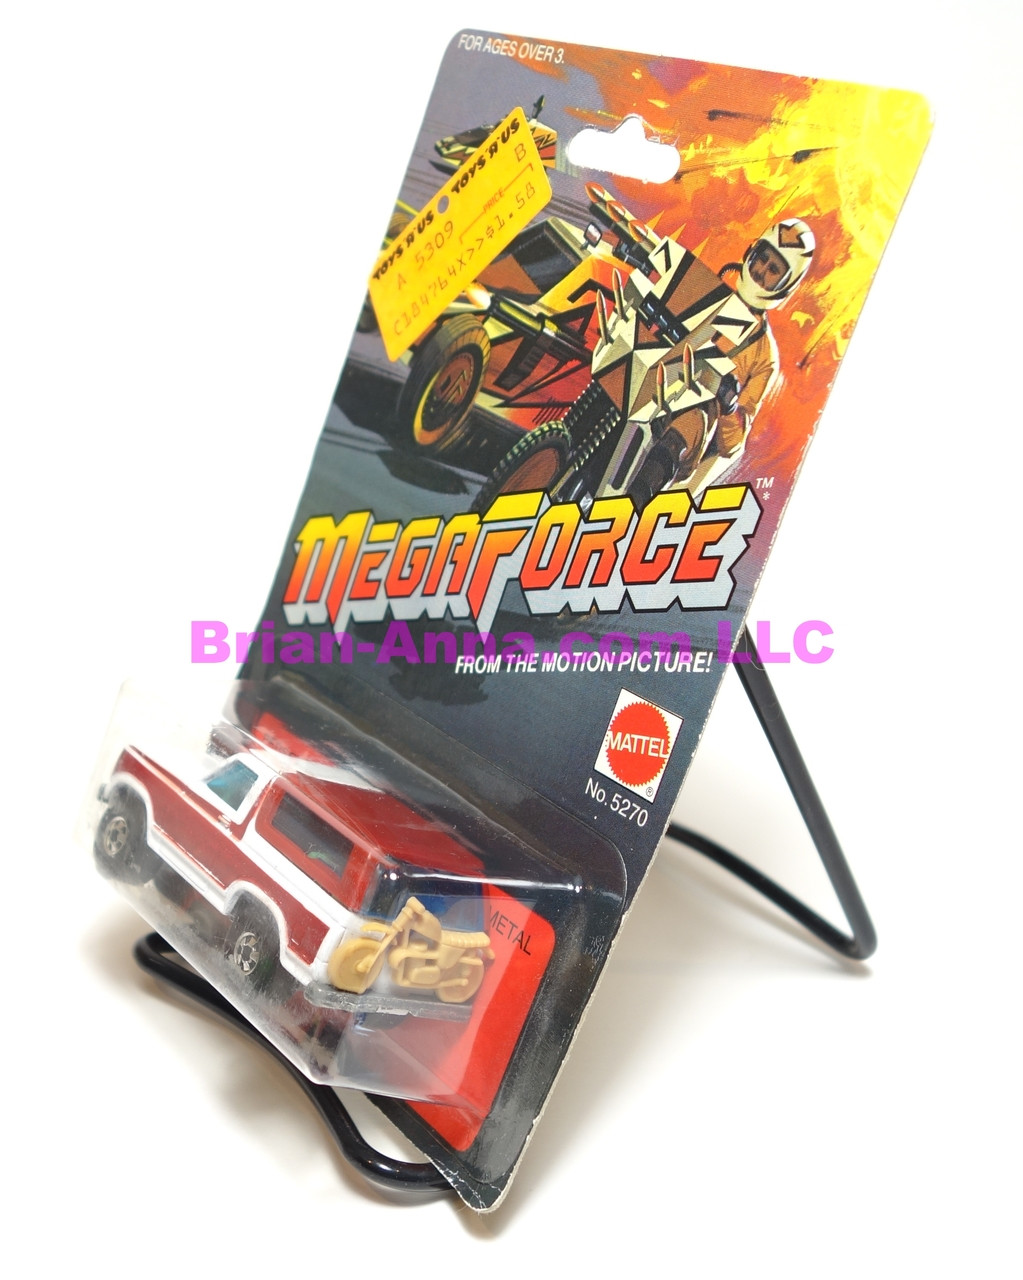 Hot Wheels Mega Force Personnel Carrier, Tan Interior on the blister